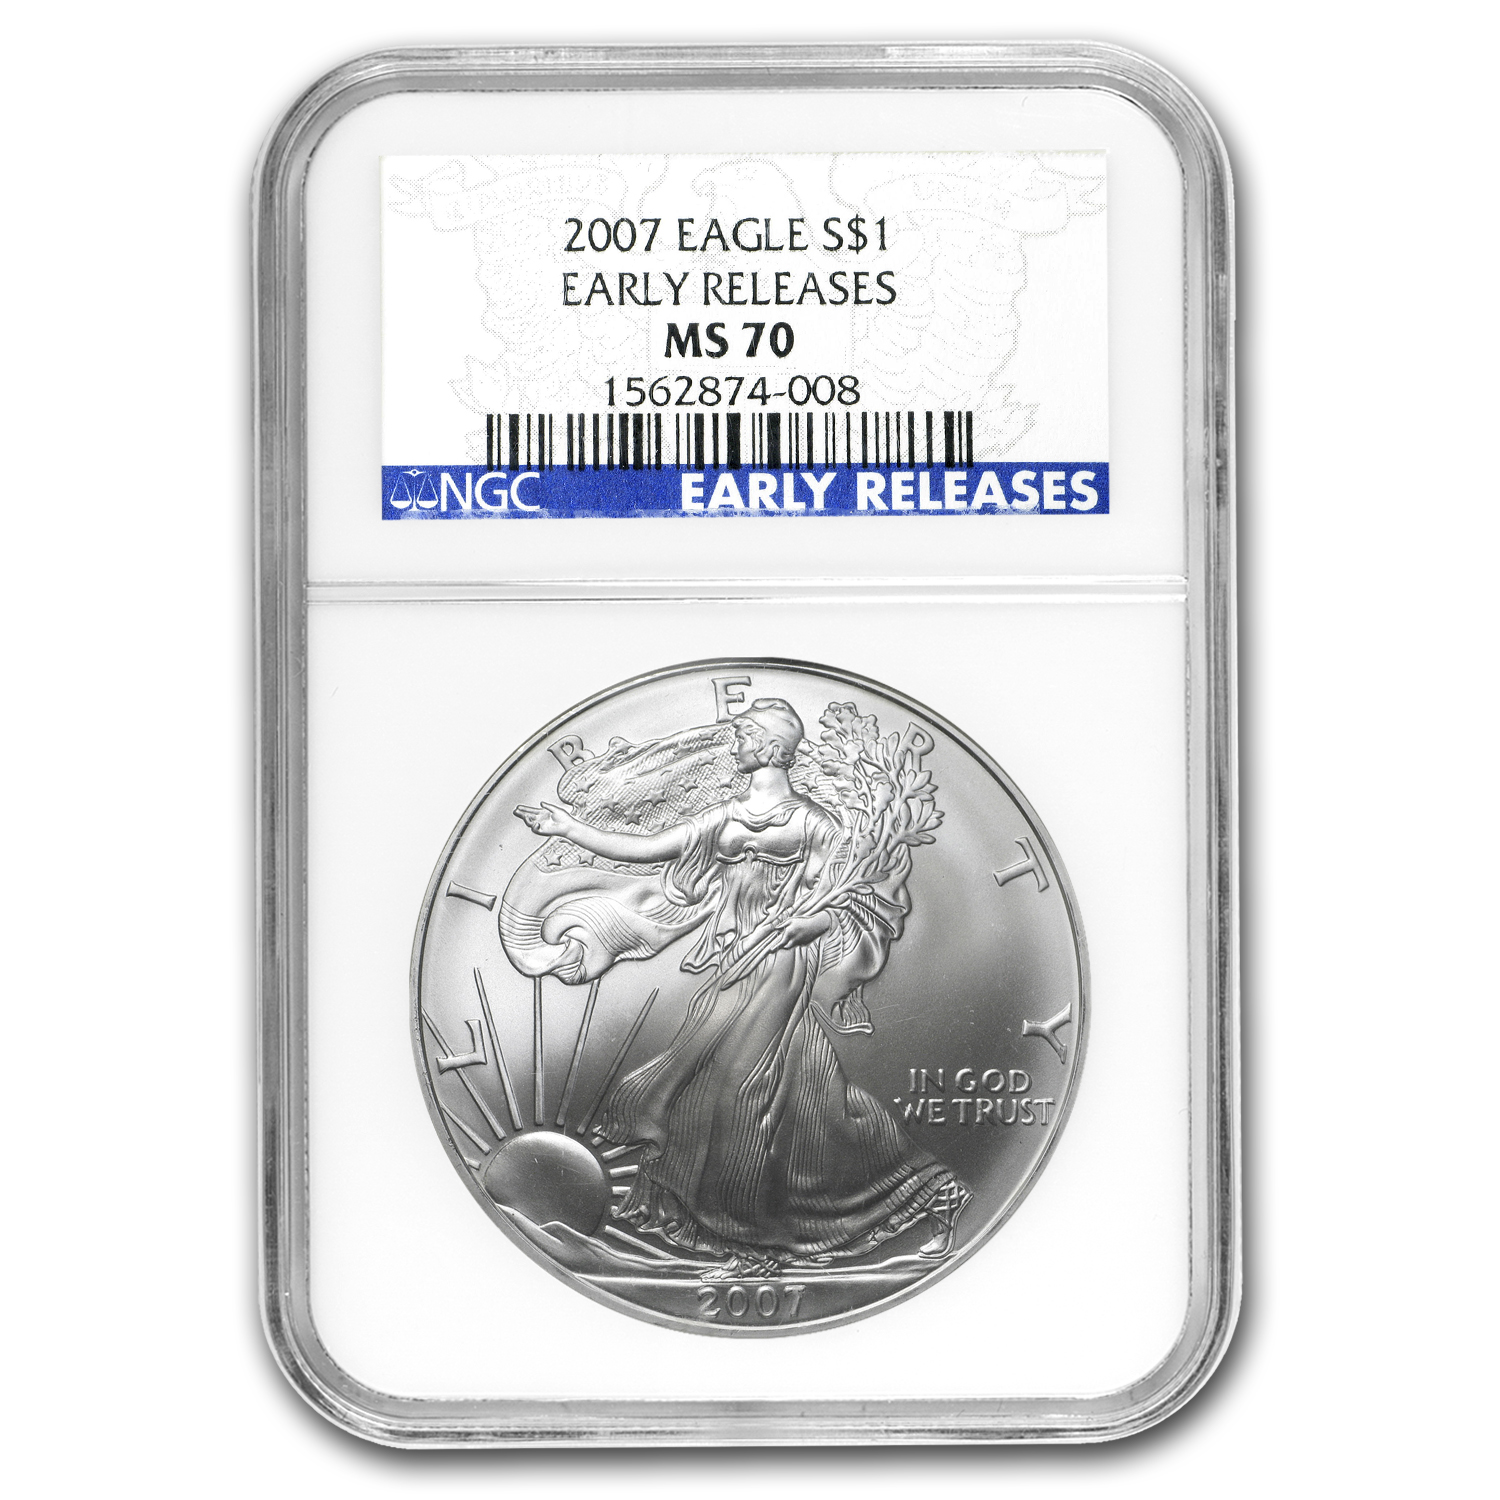 2007 Silver American Eagle - Early Releases - MS-70 NGC